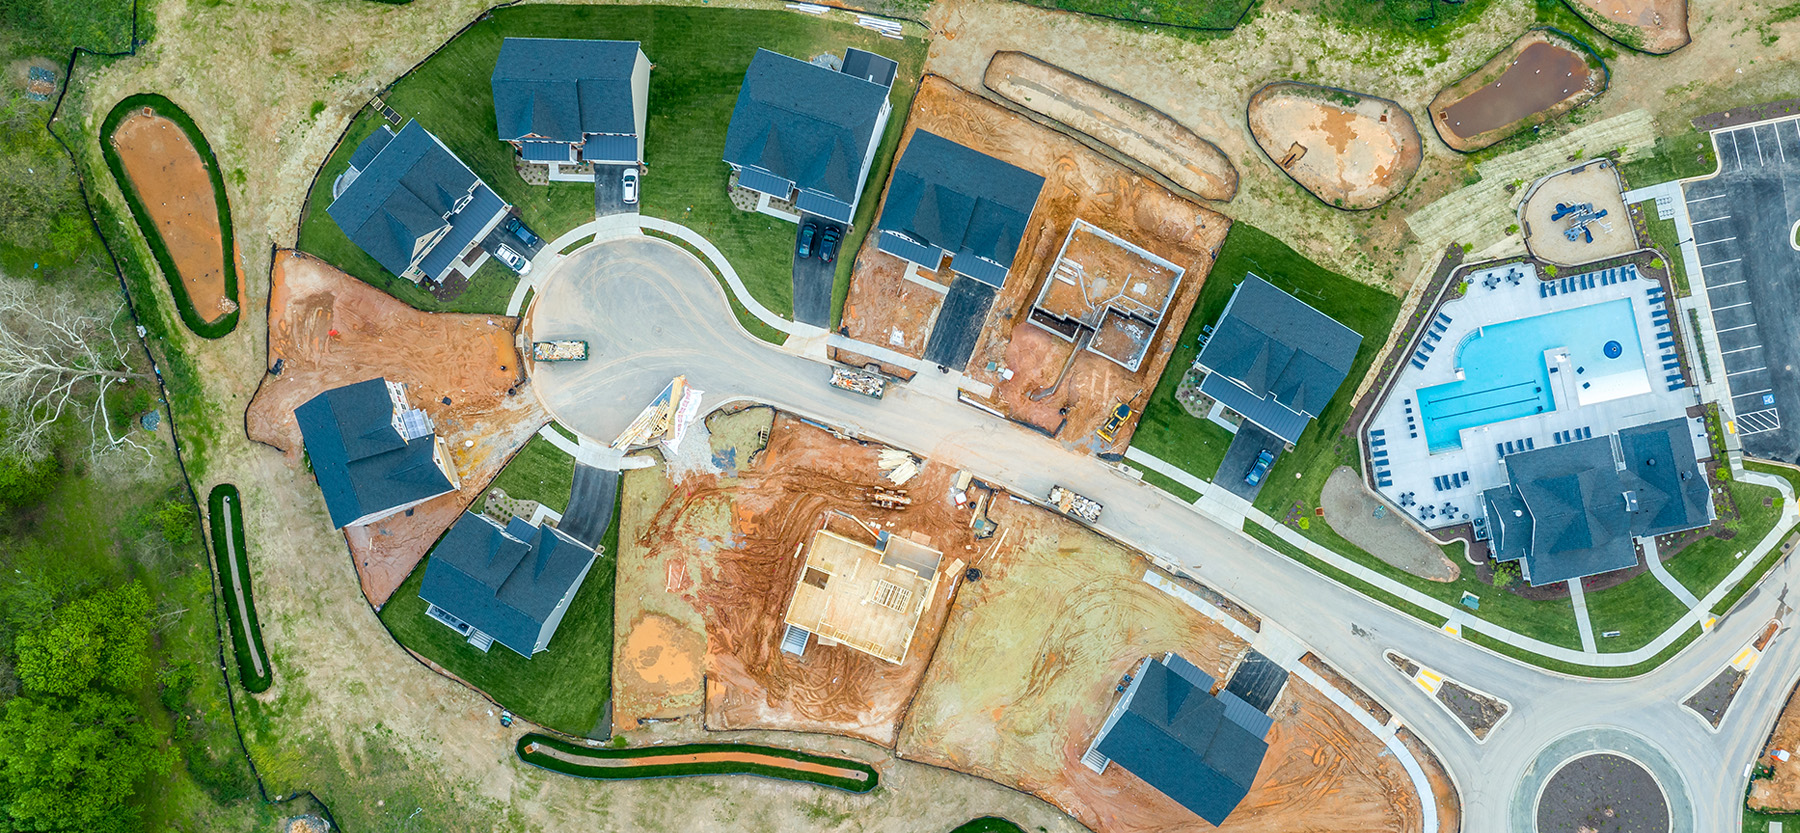 How to Market Your Master-Planned Development Before Construction Is Complete